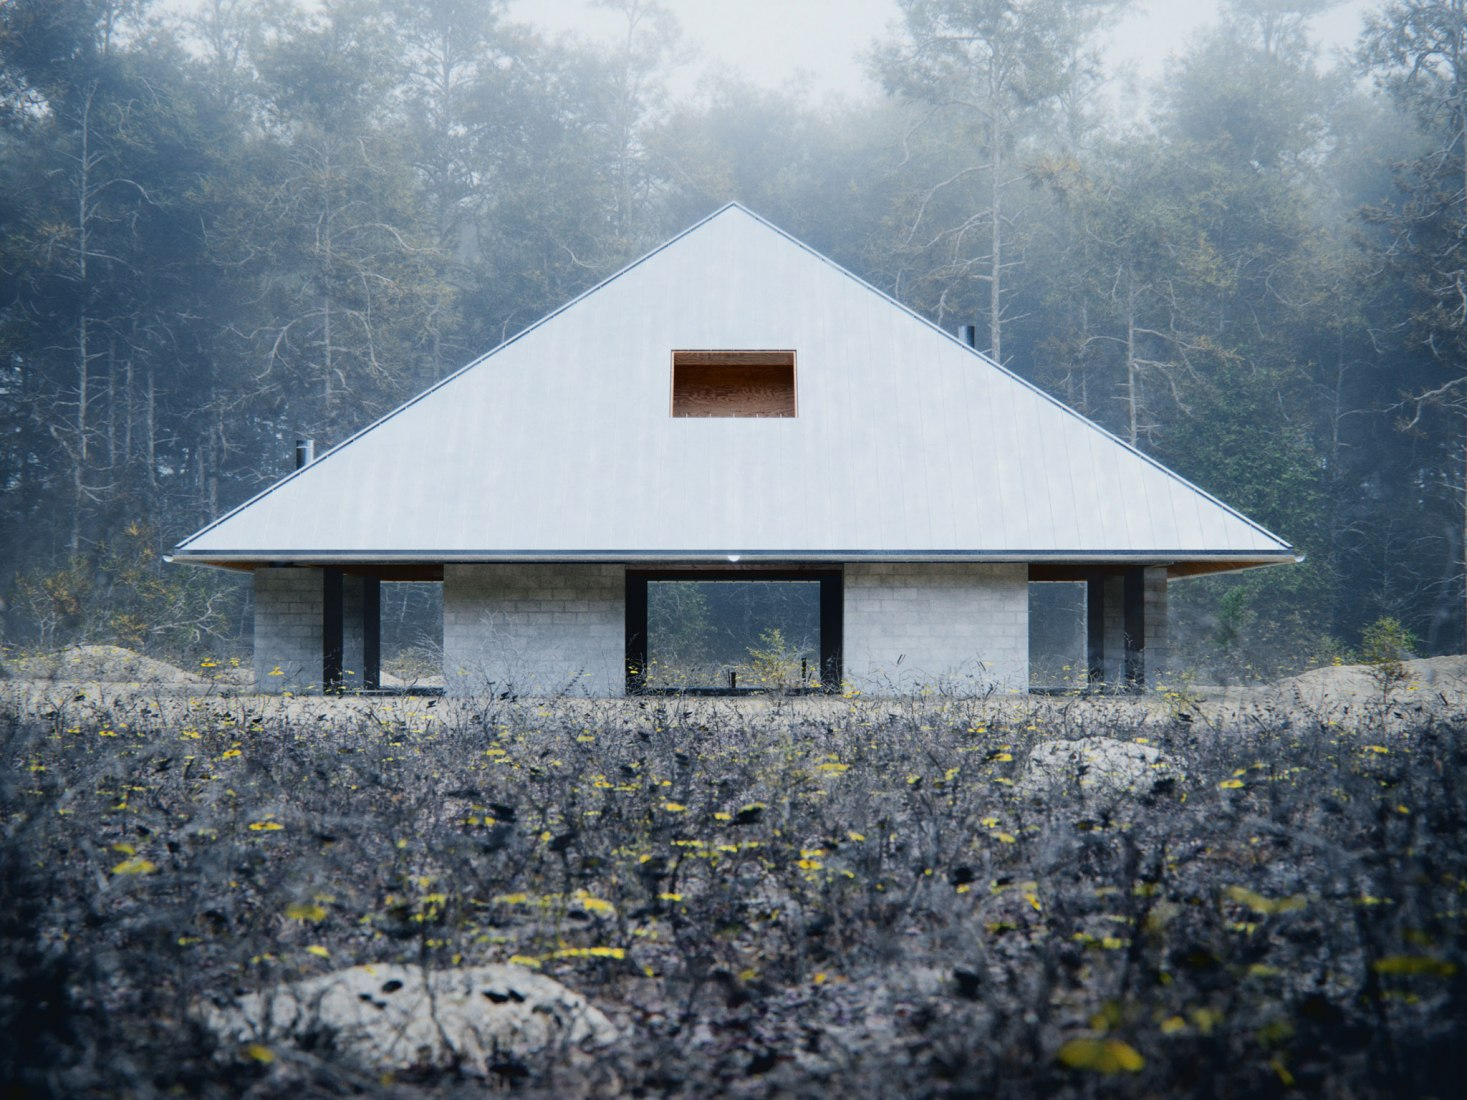 Rendering. House of the Woodland by WOJR. Image Courtesy of D-Render